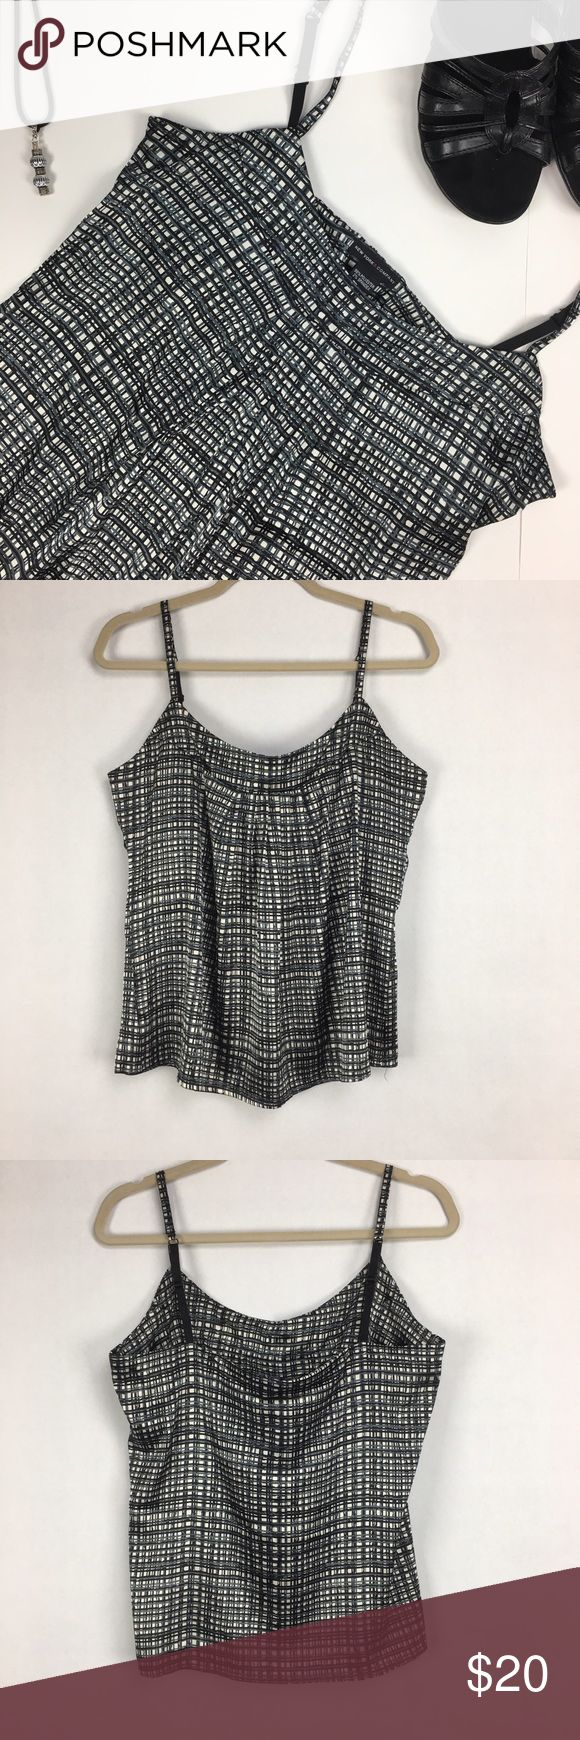 New York and Company checked camisole NY&Co checkered tank top. Adjustable straps. Built in shelf bra, no padding. Size medium. 98% polyester 2% spandex. New York & Company Tops Camisoles